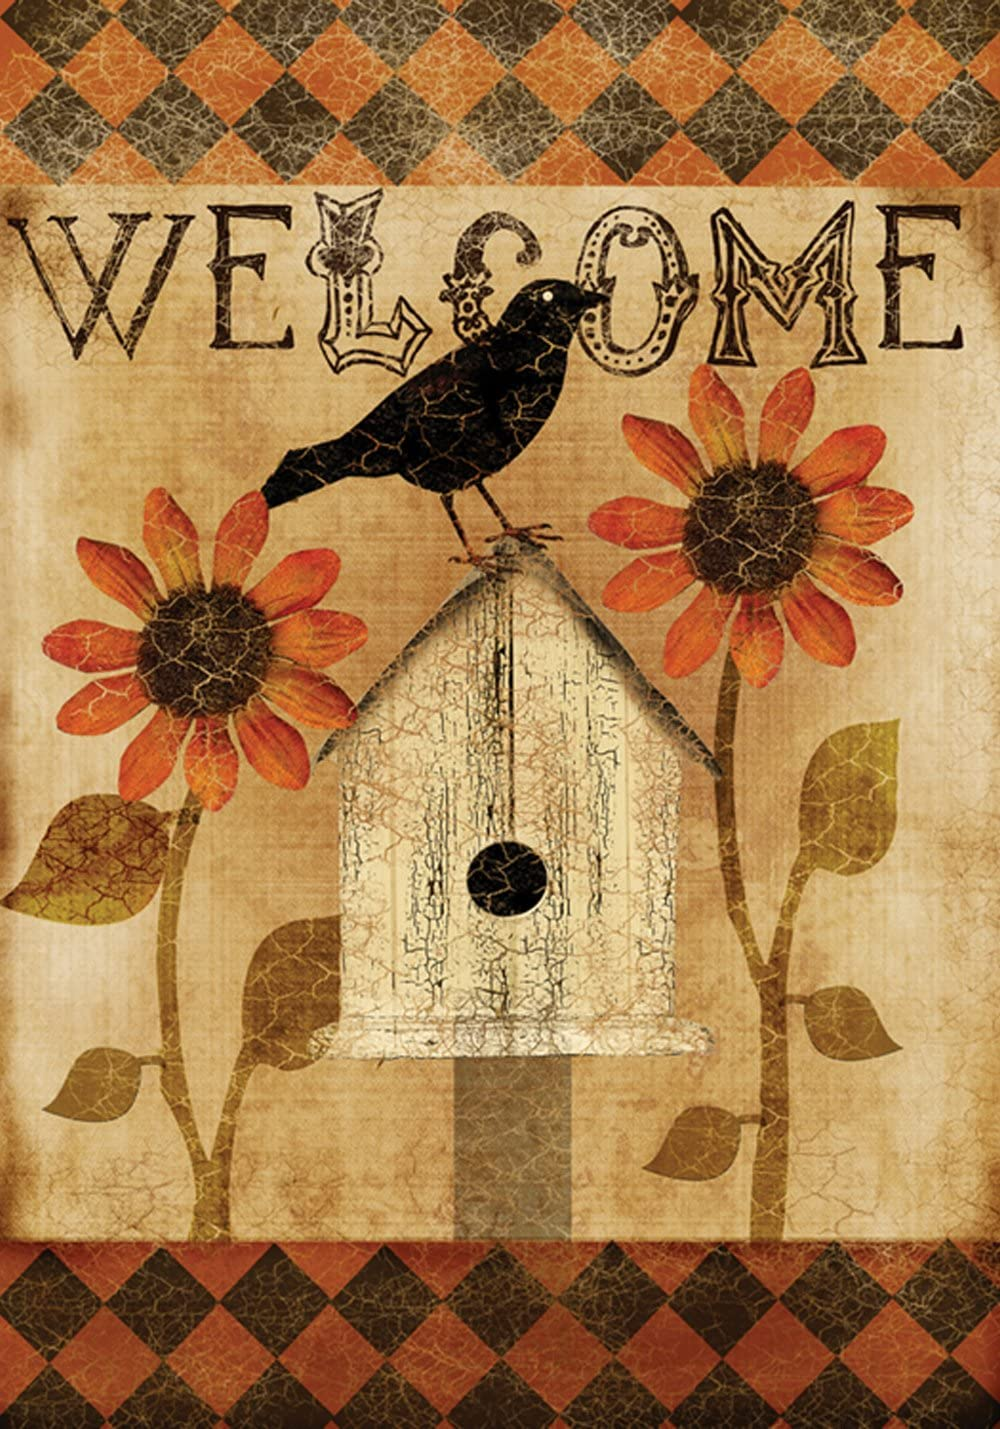 Toland Home Garden Harlequin Crow 12.5 x 18 Inch Decorative Rustic Welcome Fall Autumn Bird Garden Flag